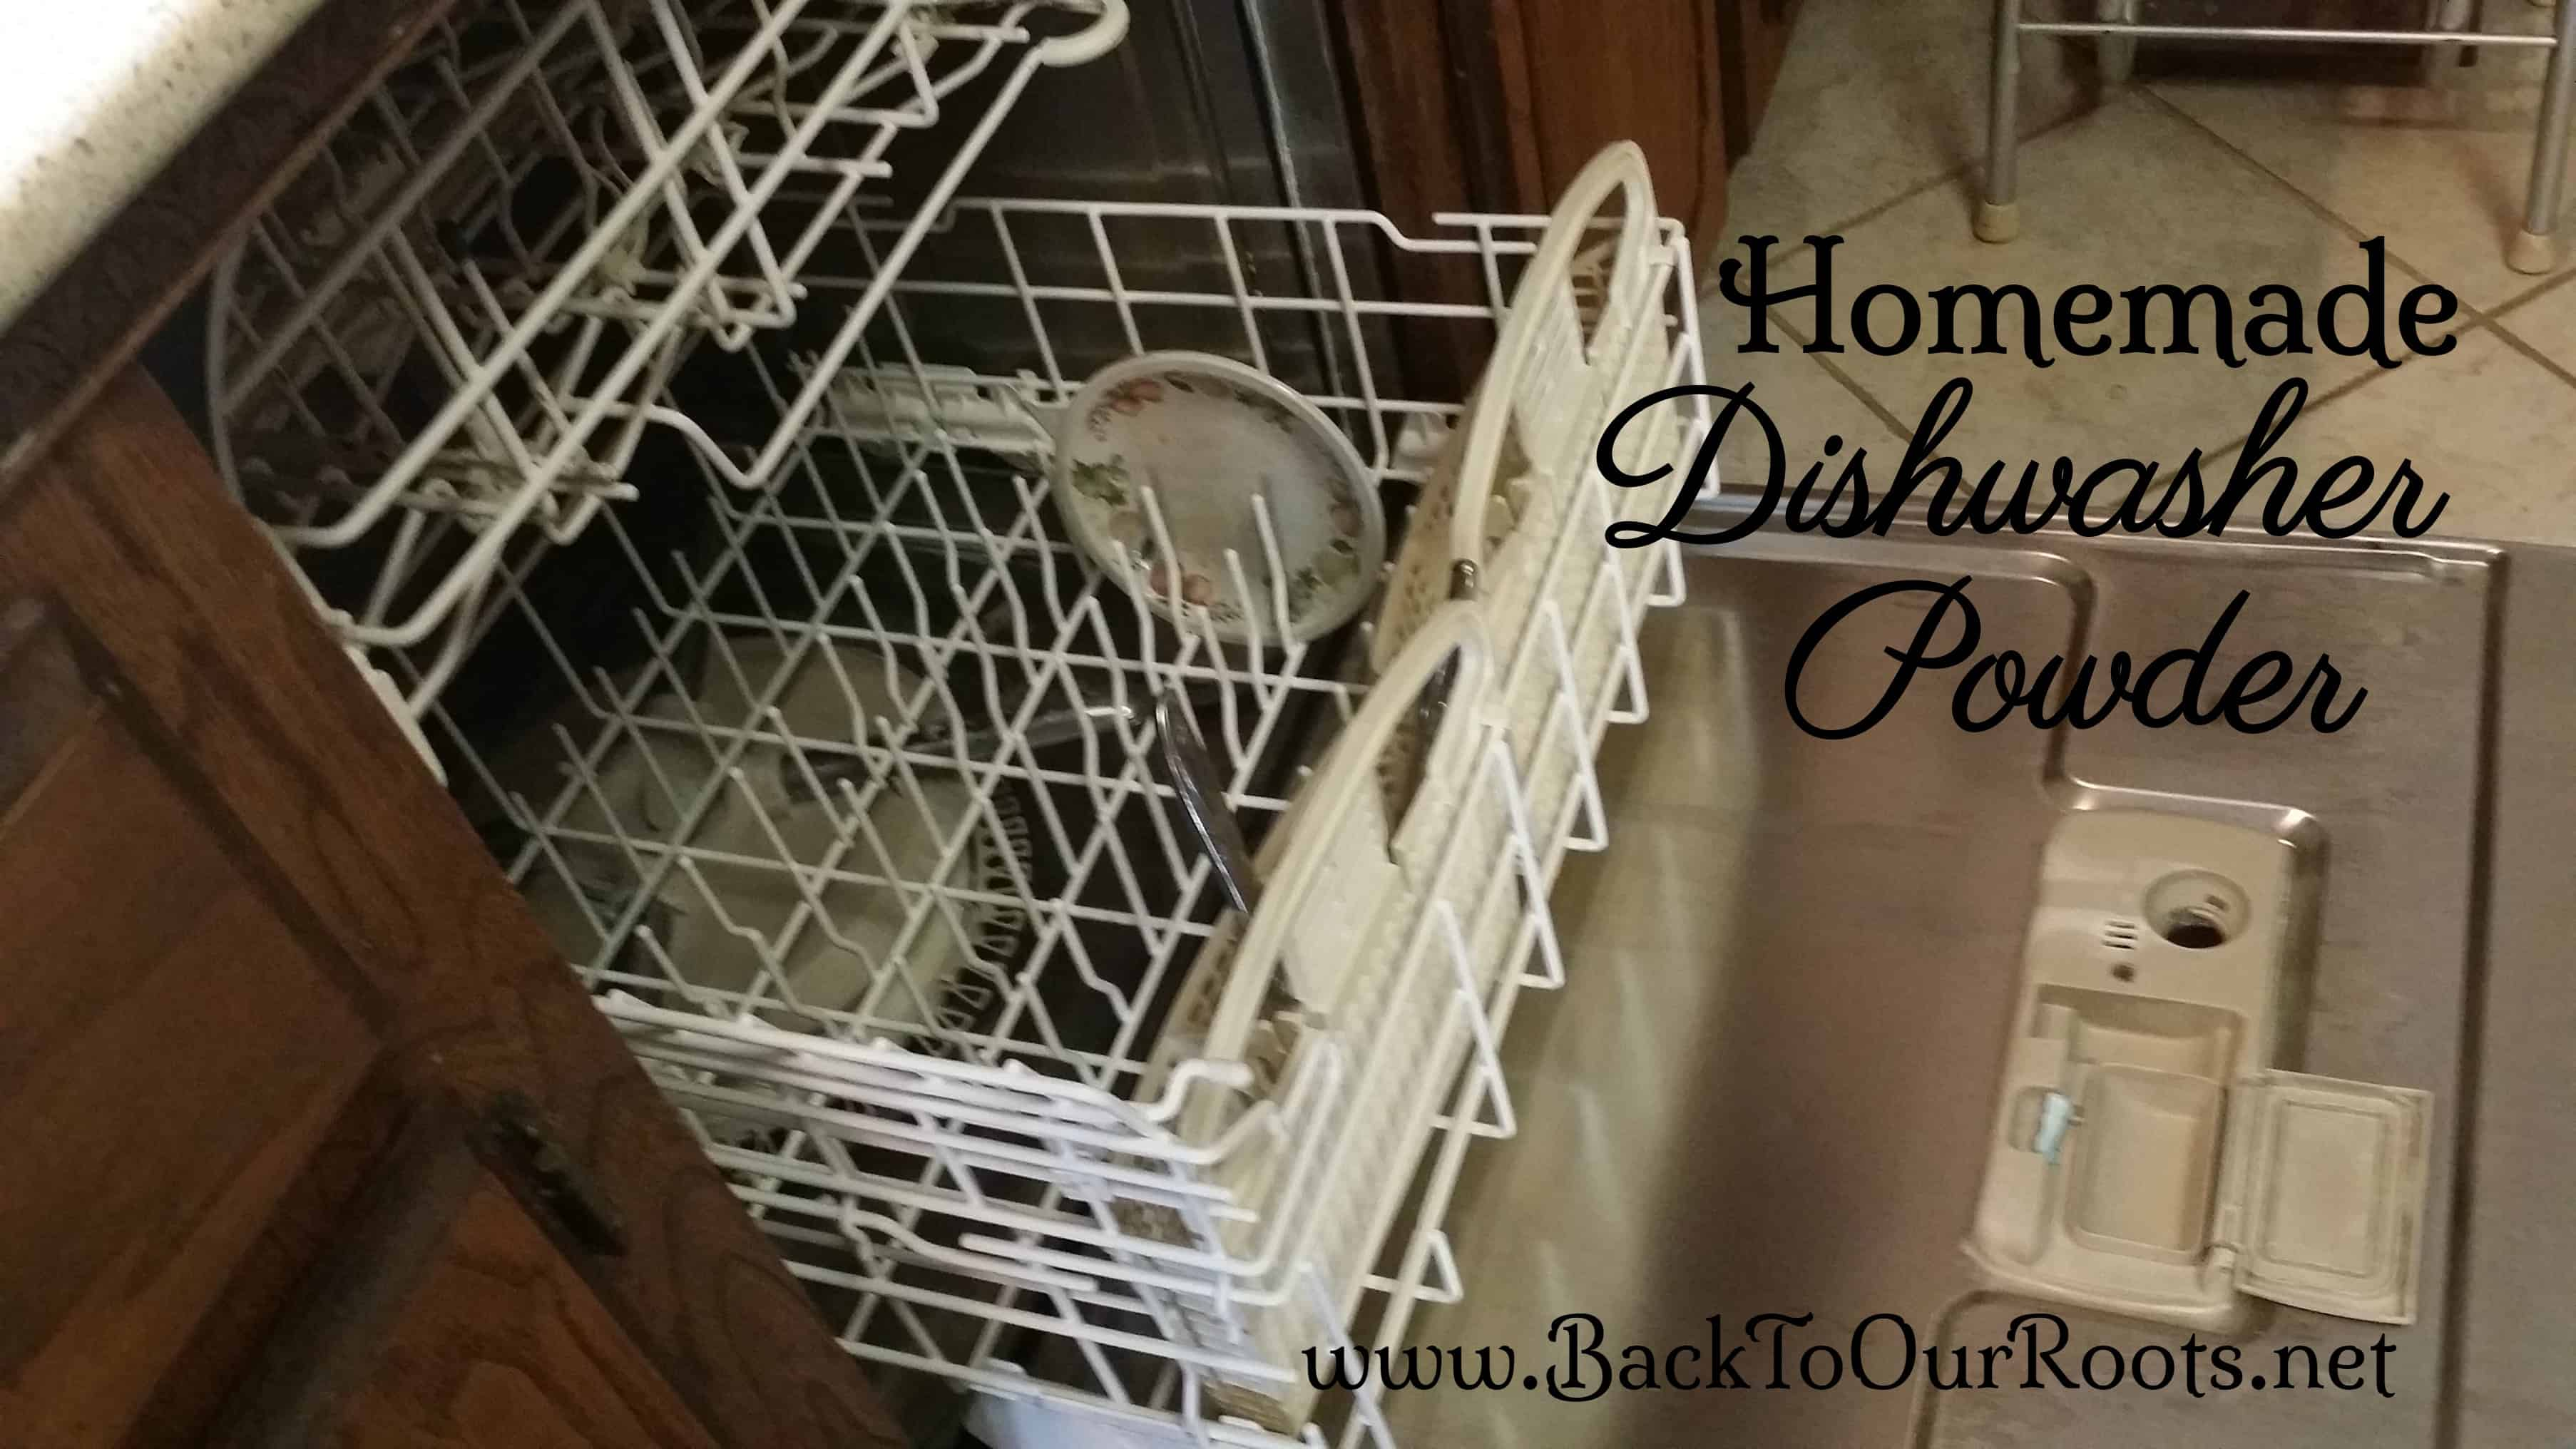 Homemade Dishwasher Powder